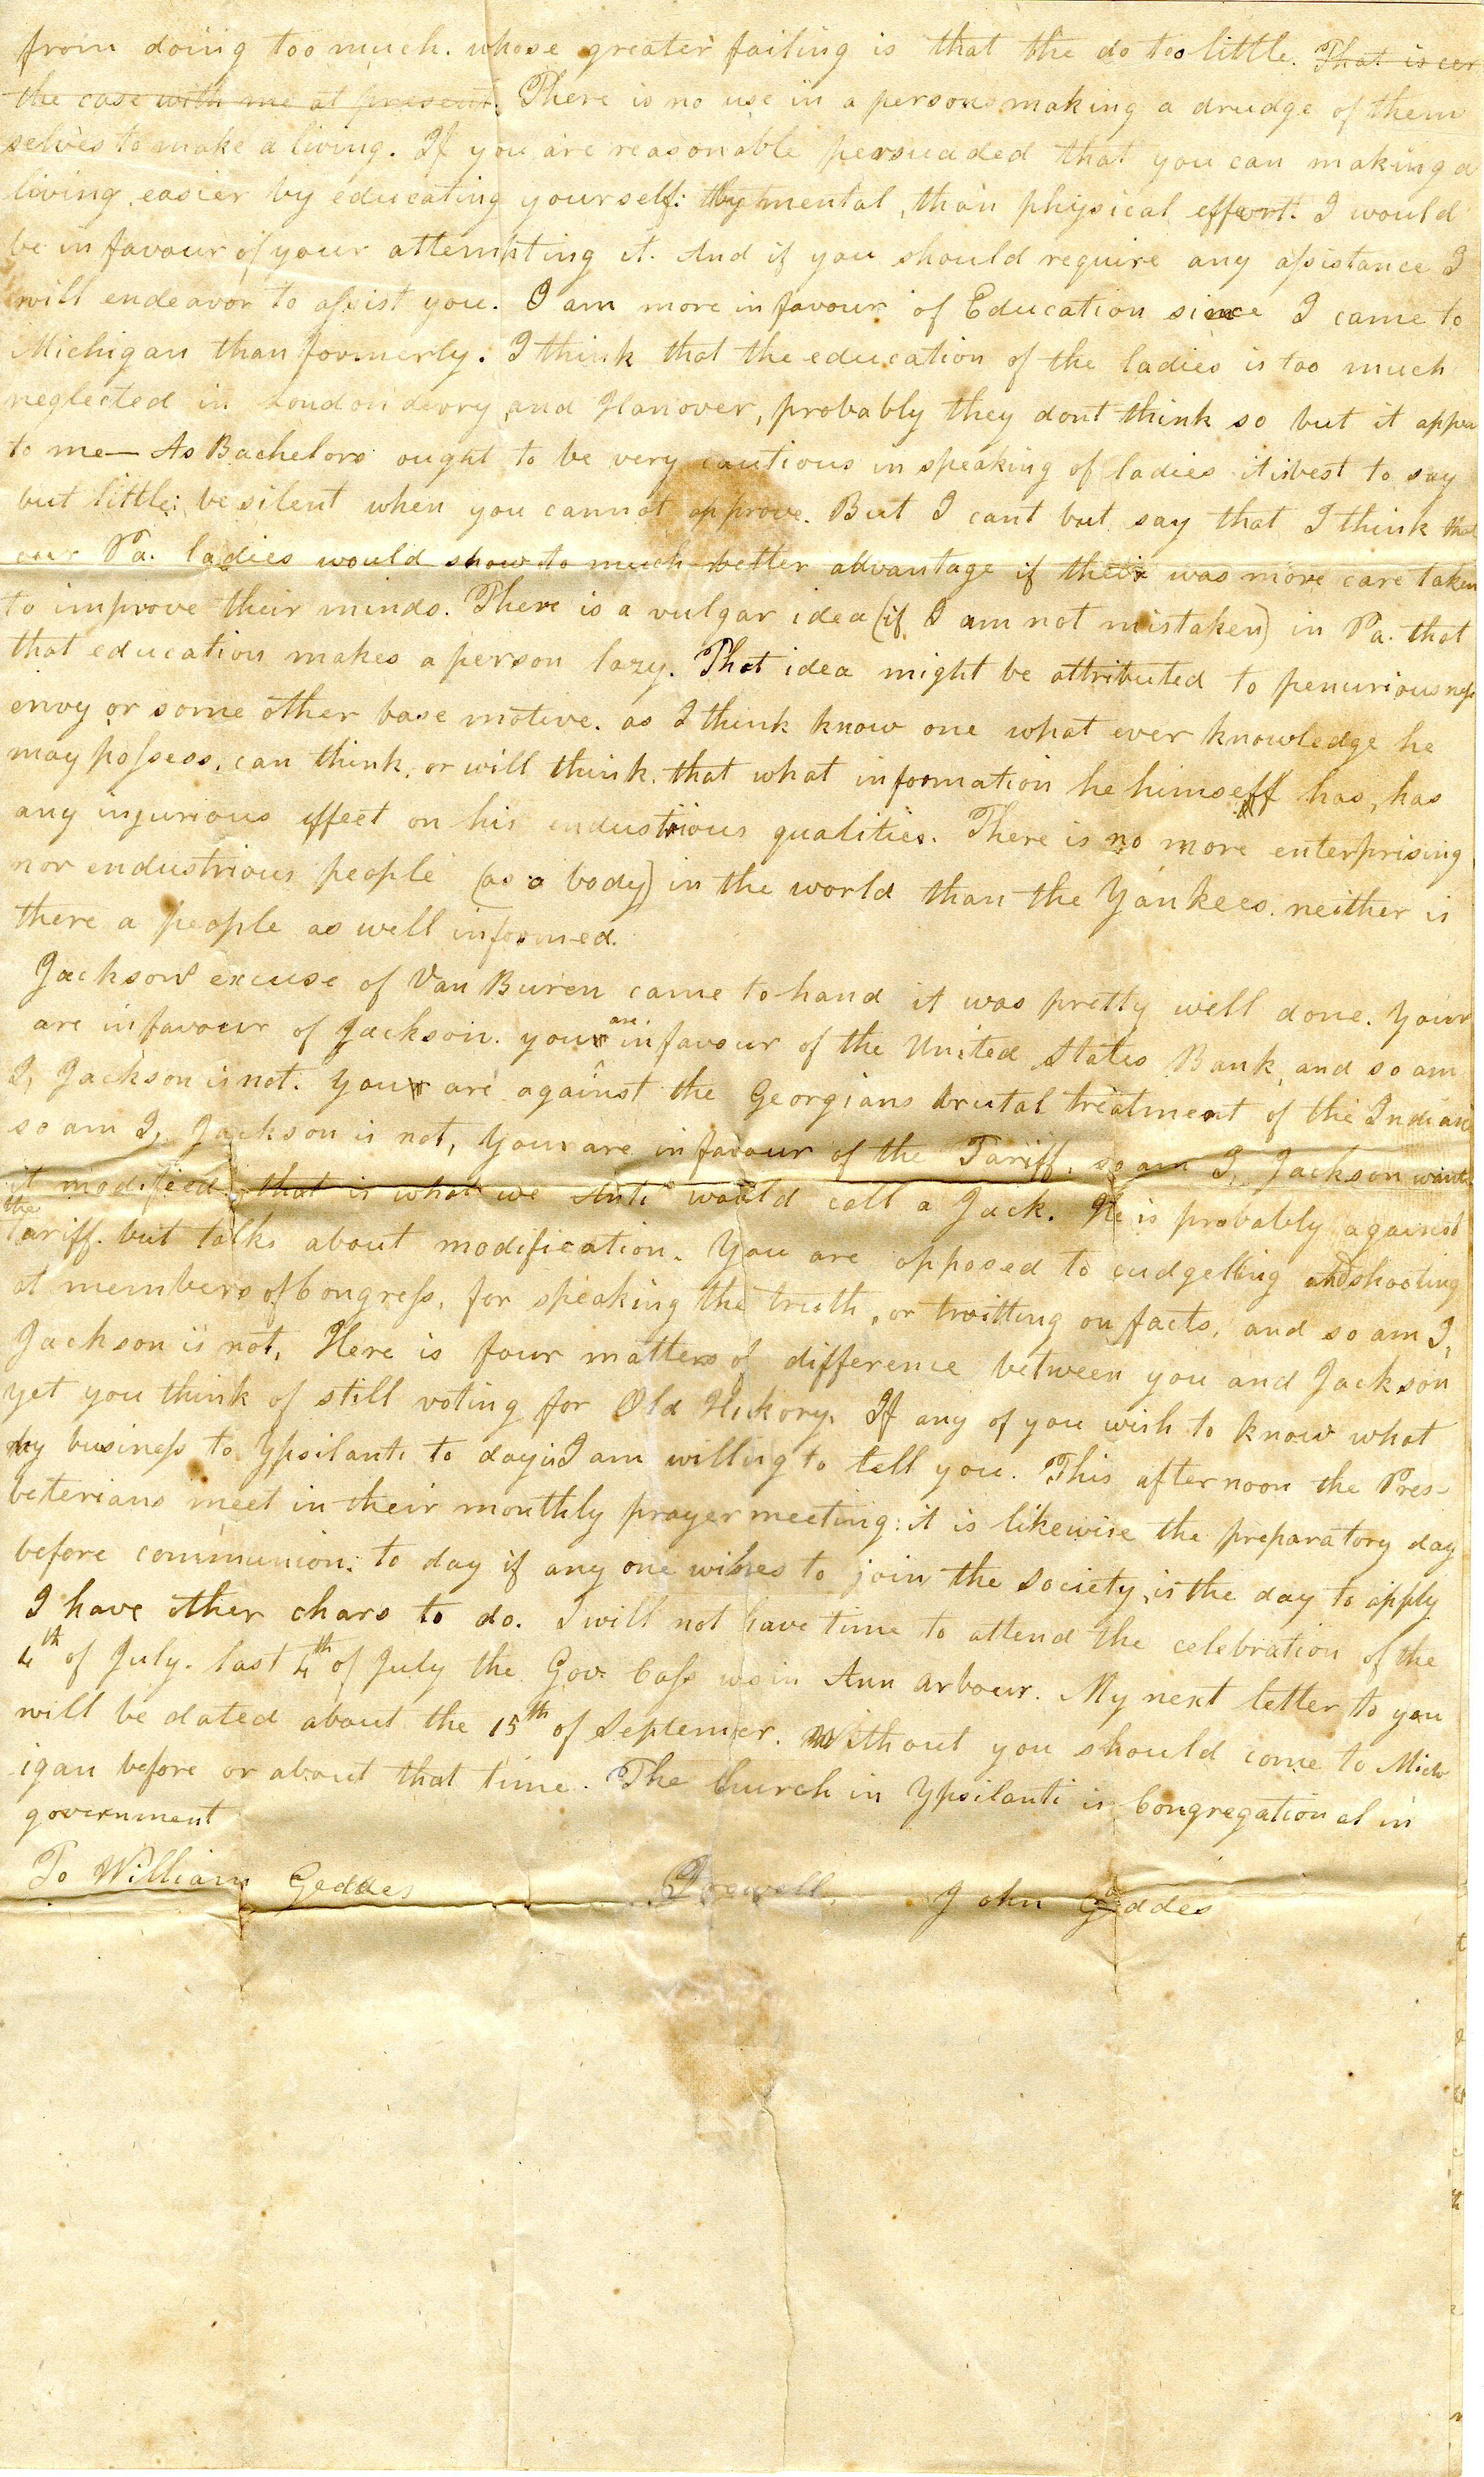 Letter From John Geddes to William Geddes, June 28, 1832 image